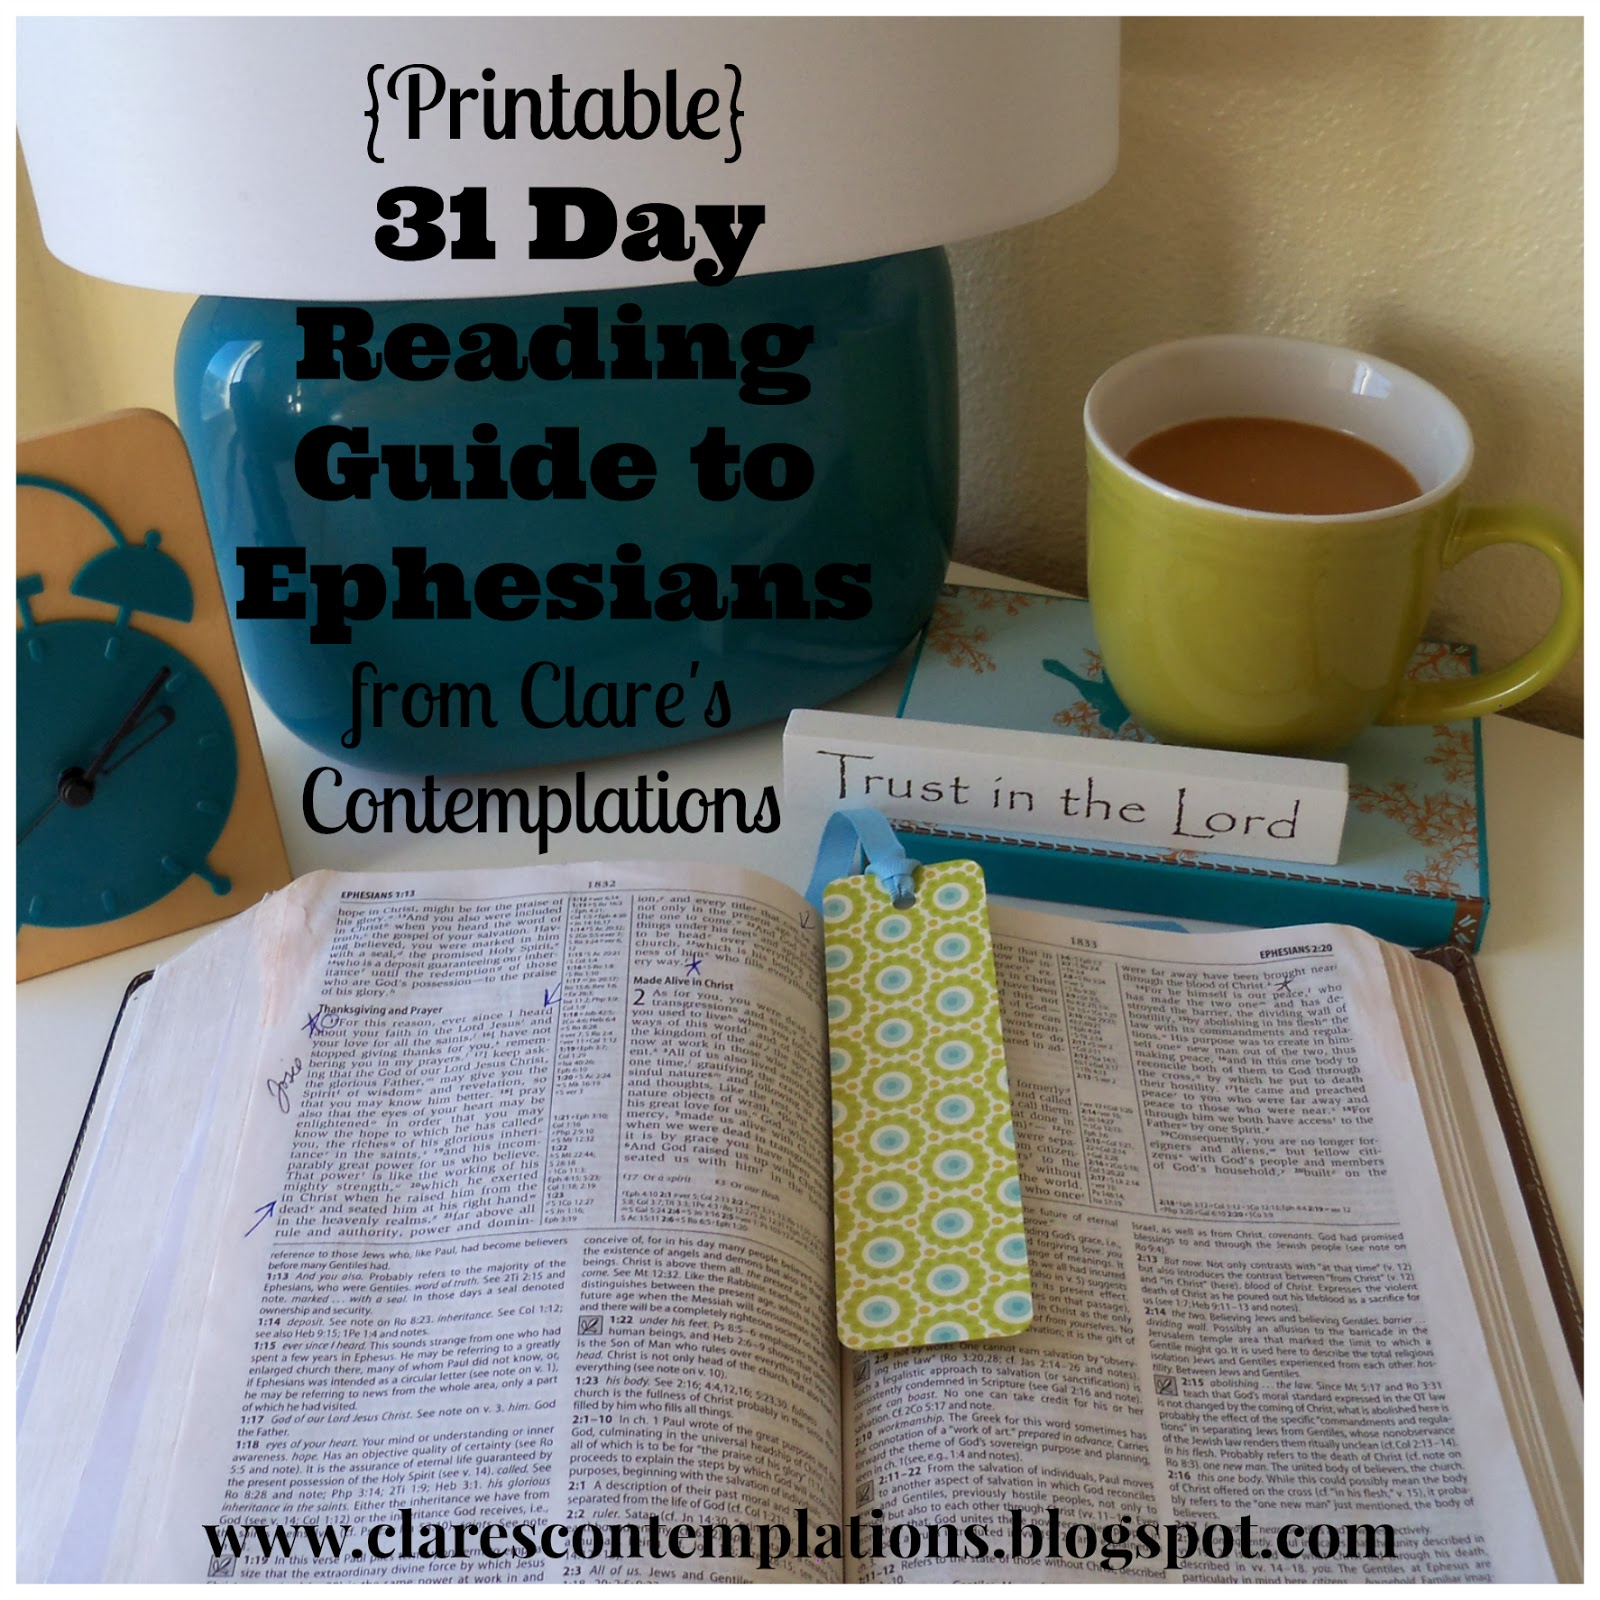 http://www.clarescontemplations.com/2013/12/31-day-reading-guide-to-ephesians.html